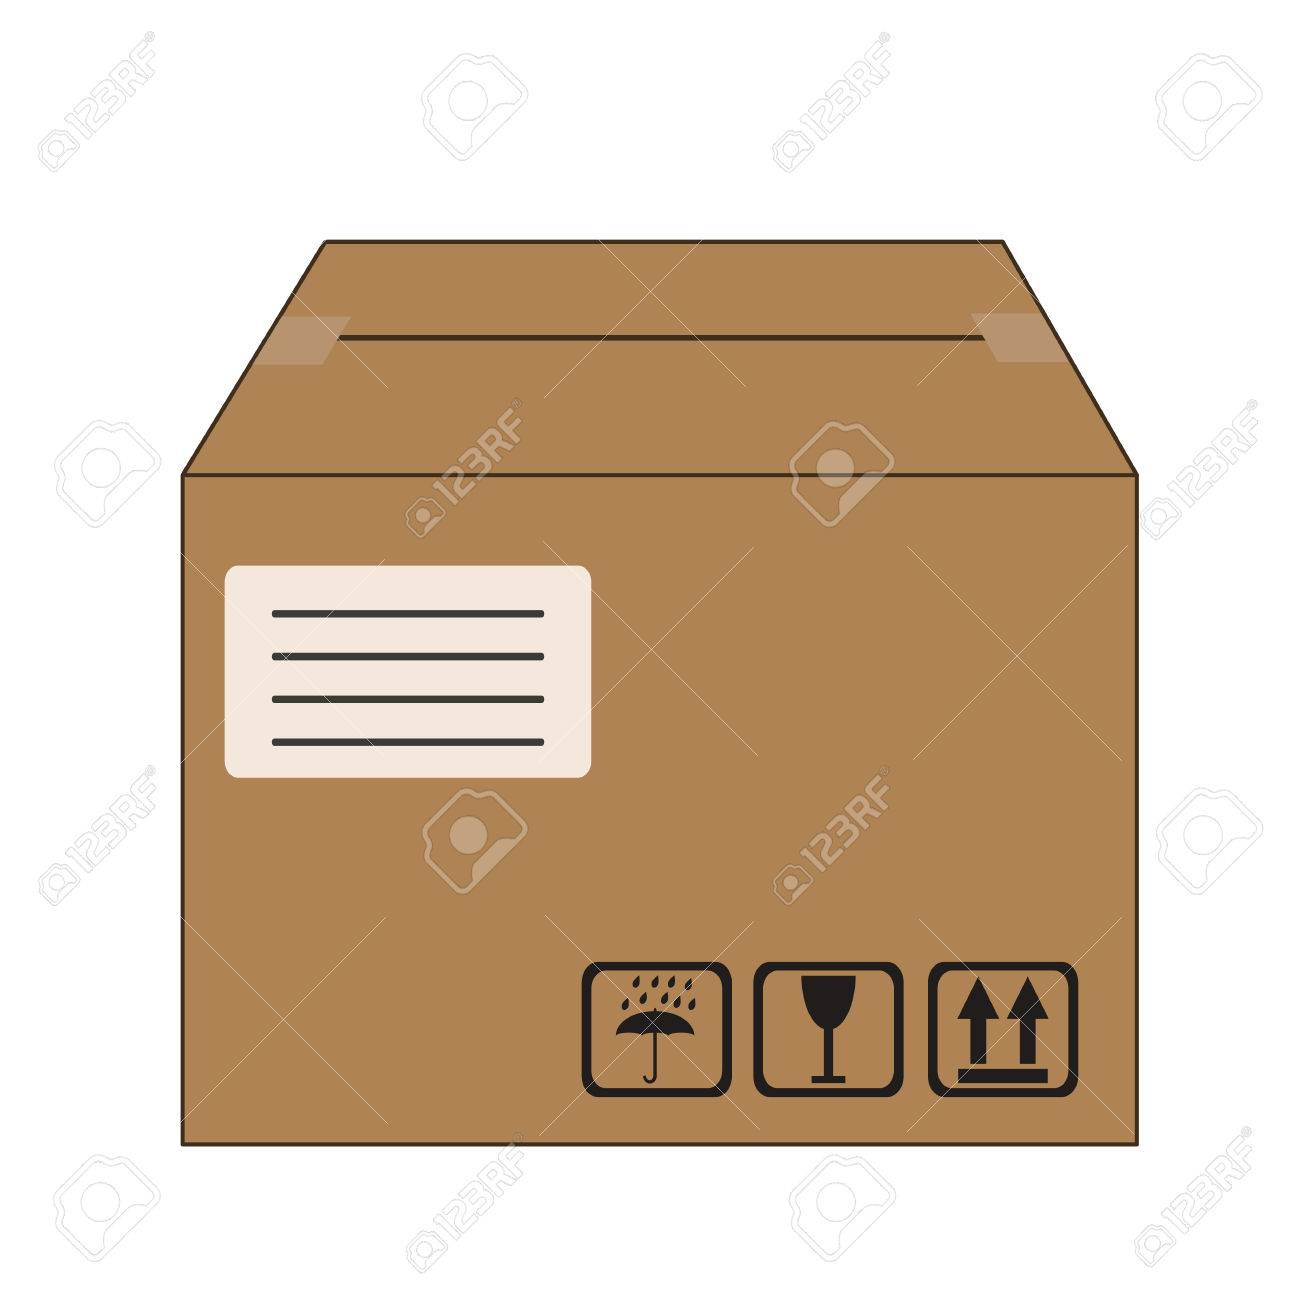 Brown Packed Cardboard Box With Address Label And Package Handling